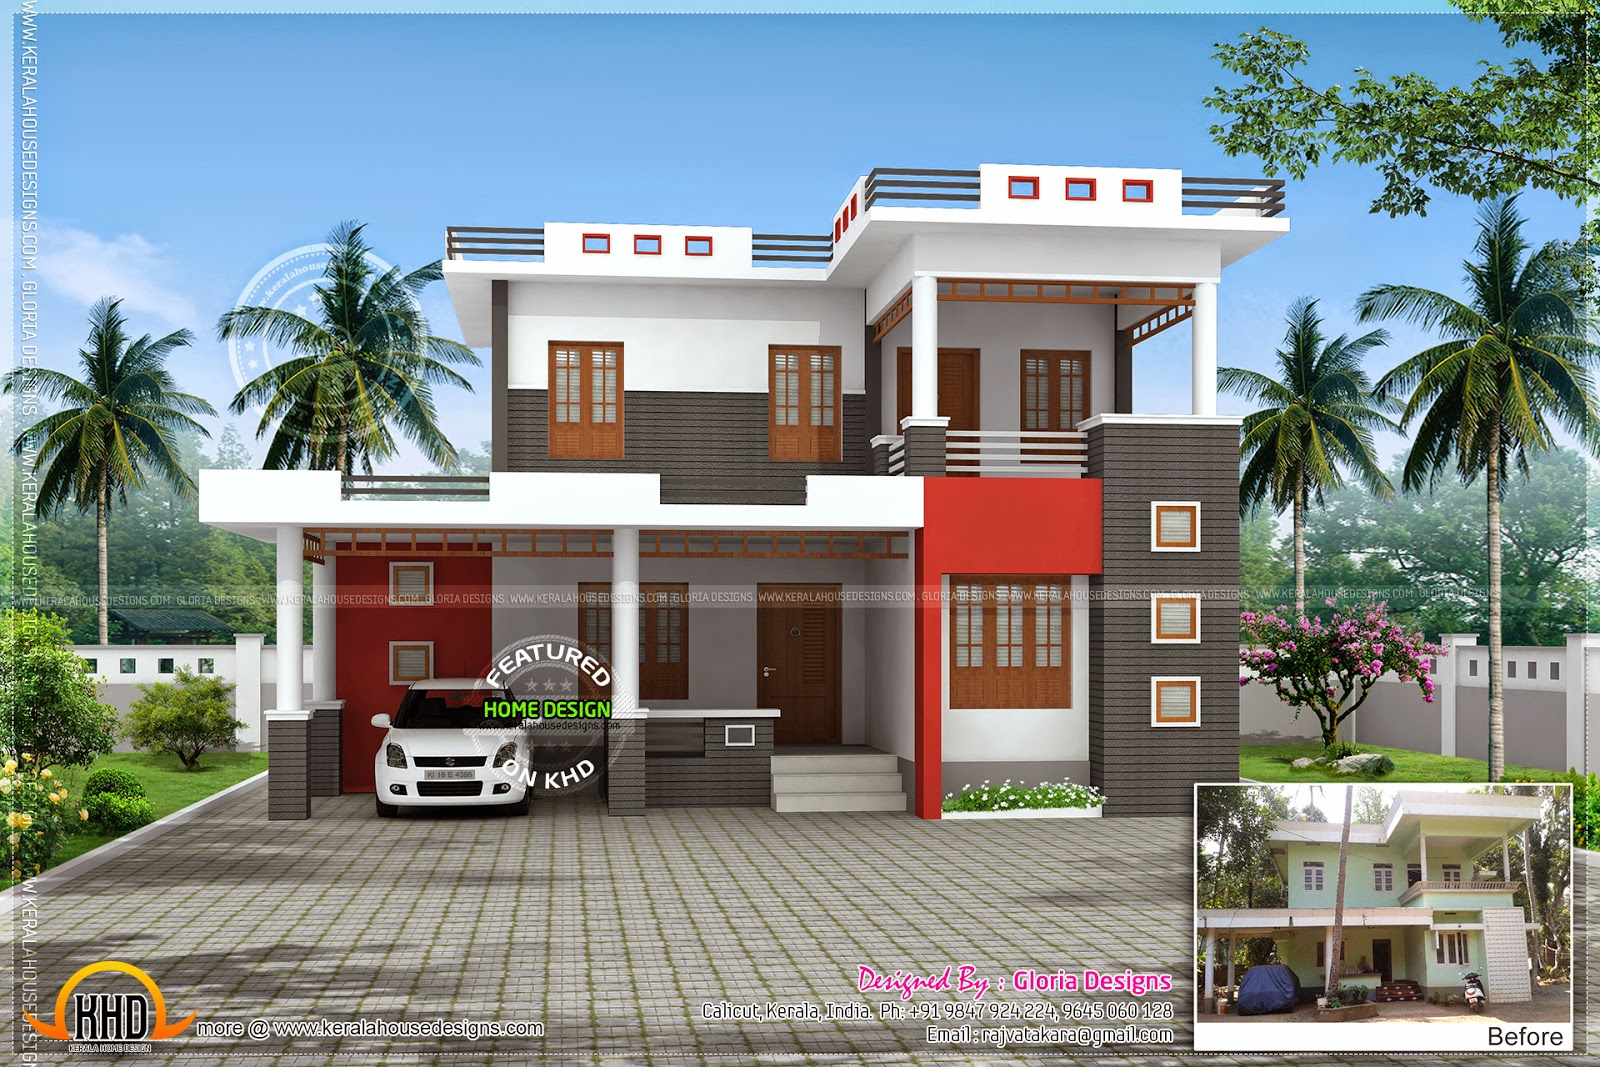 Renovation 3d model for an old house kerala home design for New model houses in kerala